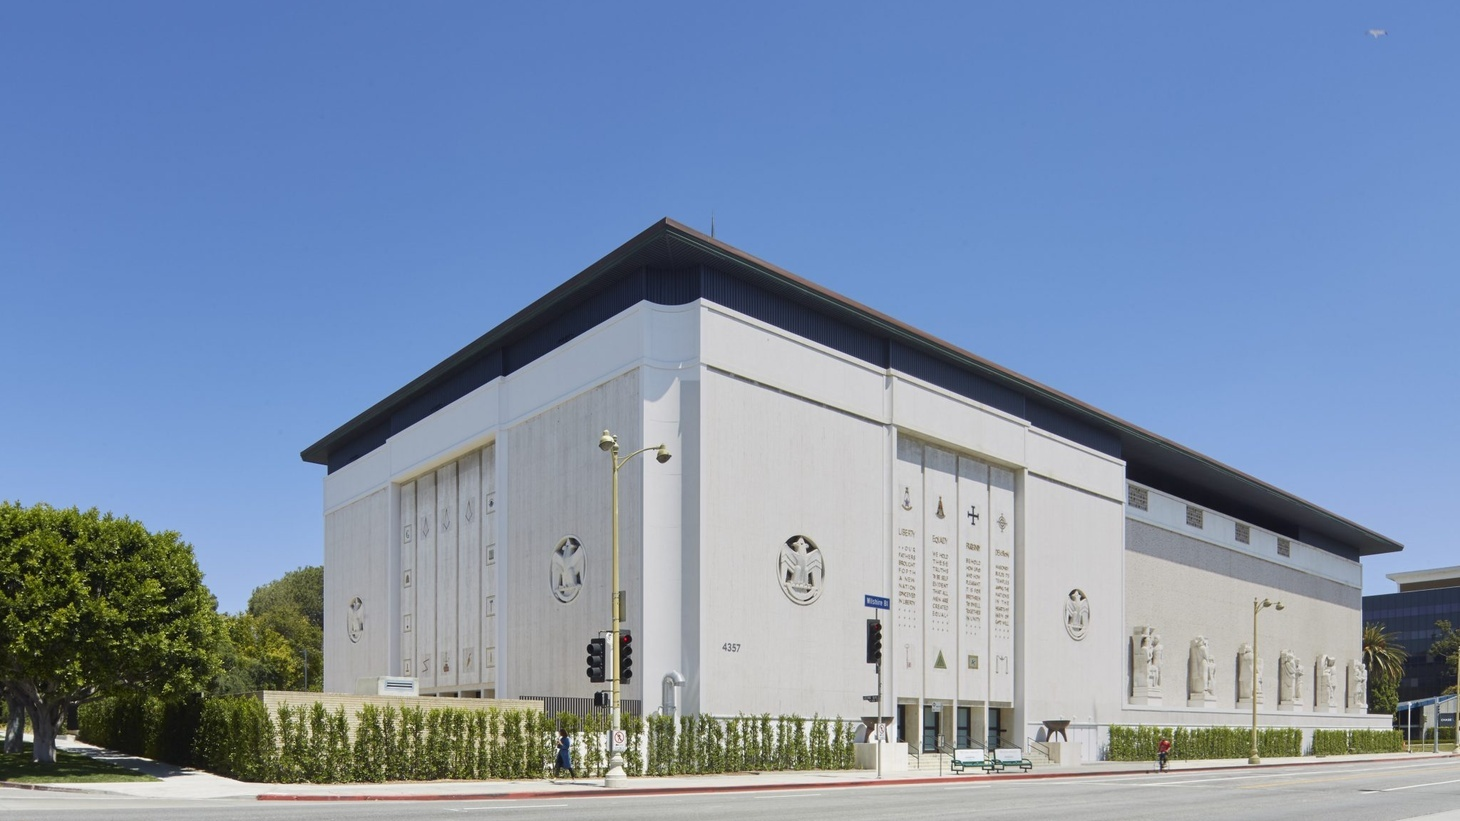 The Marciano Art Foundation was housed in the former Scottish Rite Masonic Temple designed by Millard Sheets in 1961.